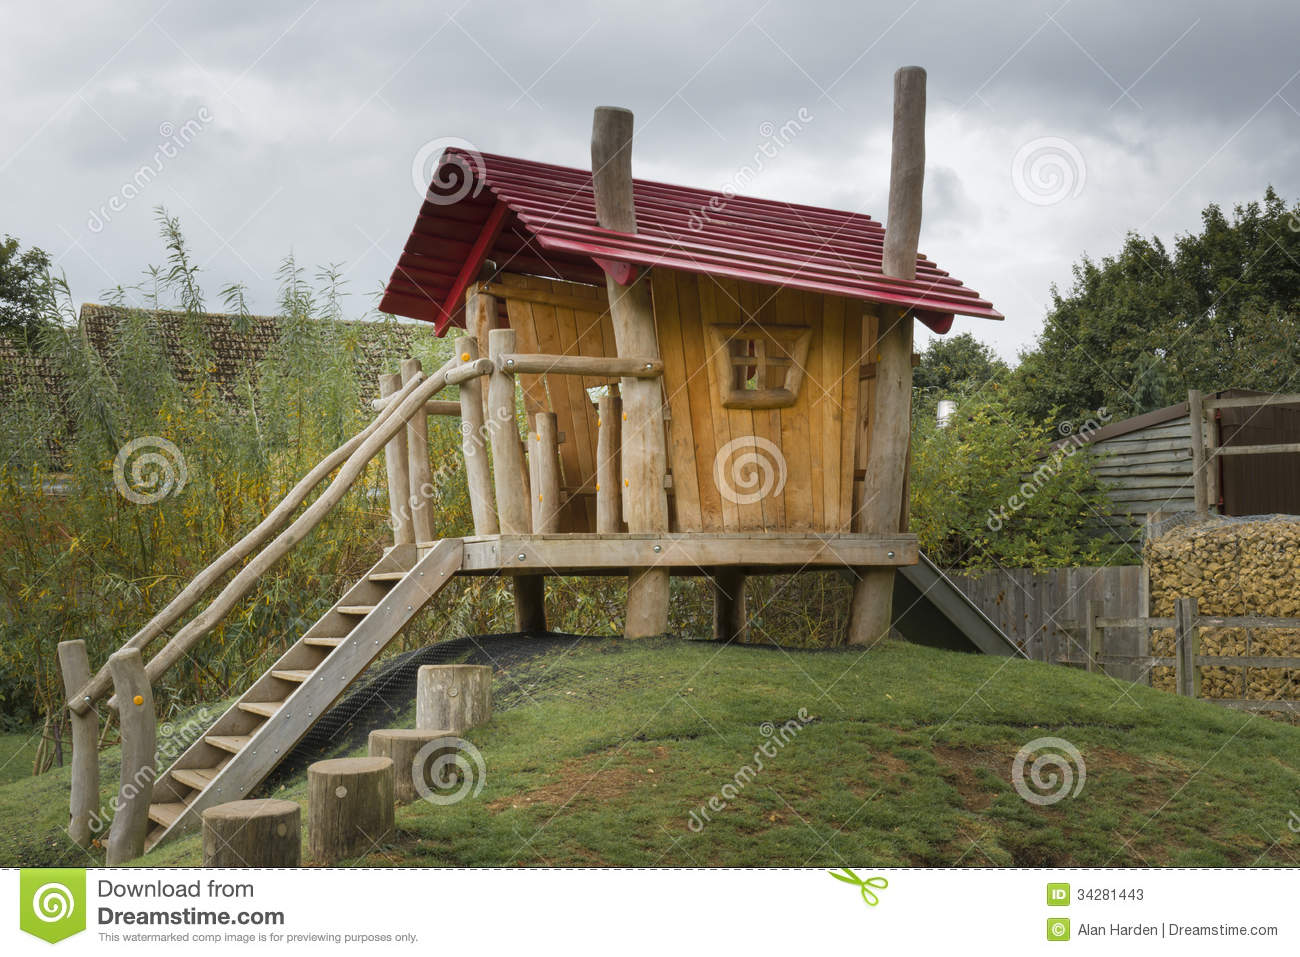 Childrens Wooden Playhouse Stock Photos - Image: 34281443